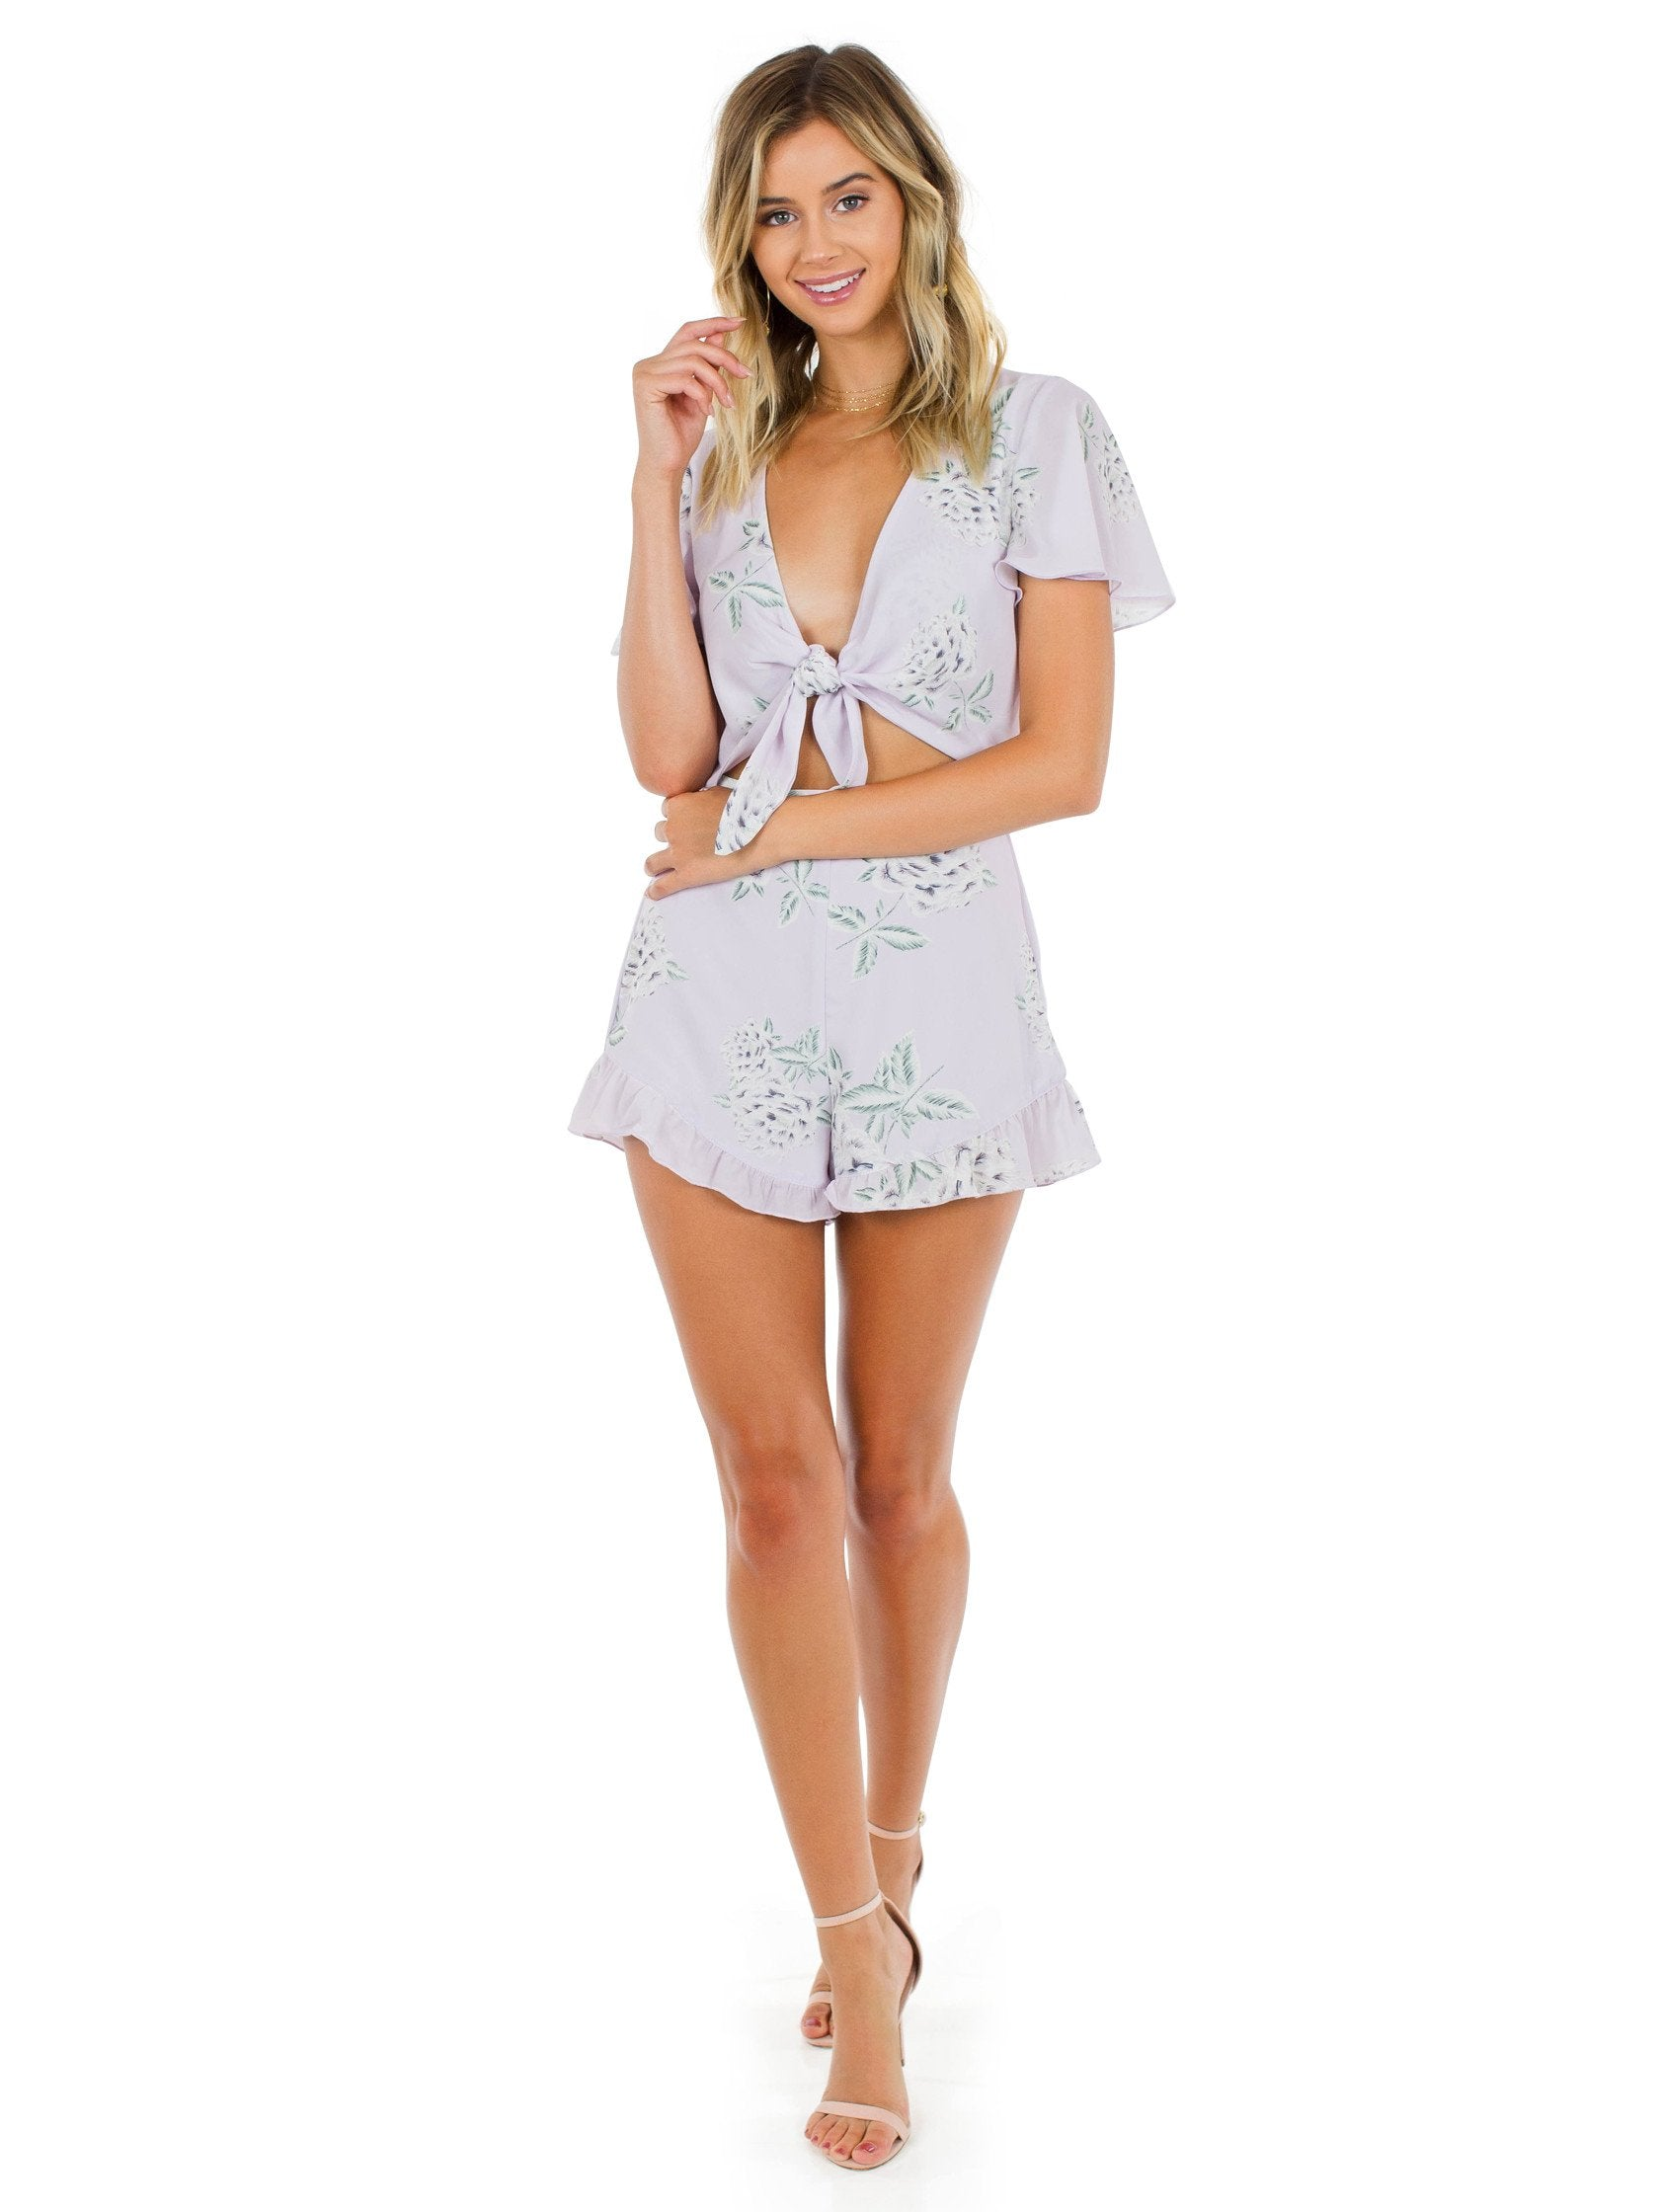 Women wearing a romper rental from Show Me Your Mumu called Riviera Romper